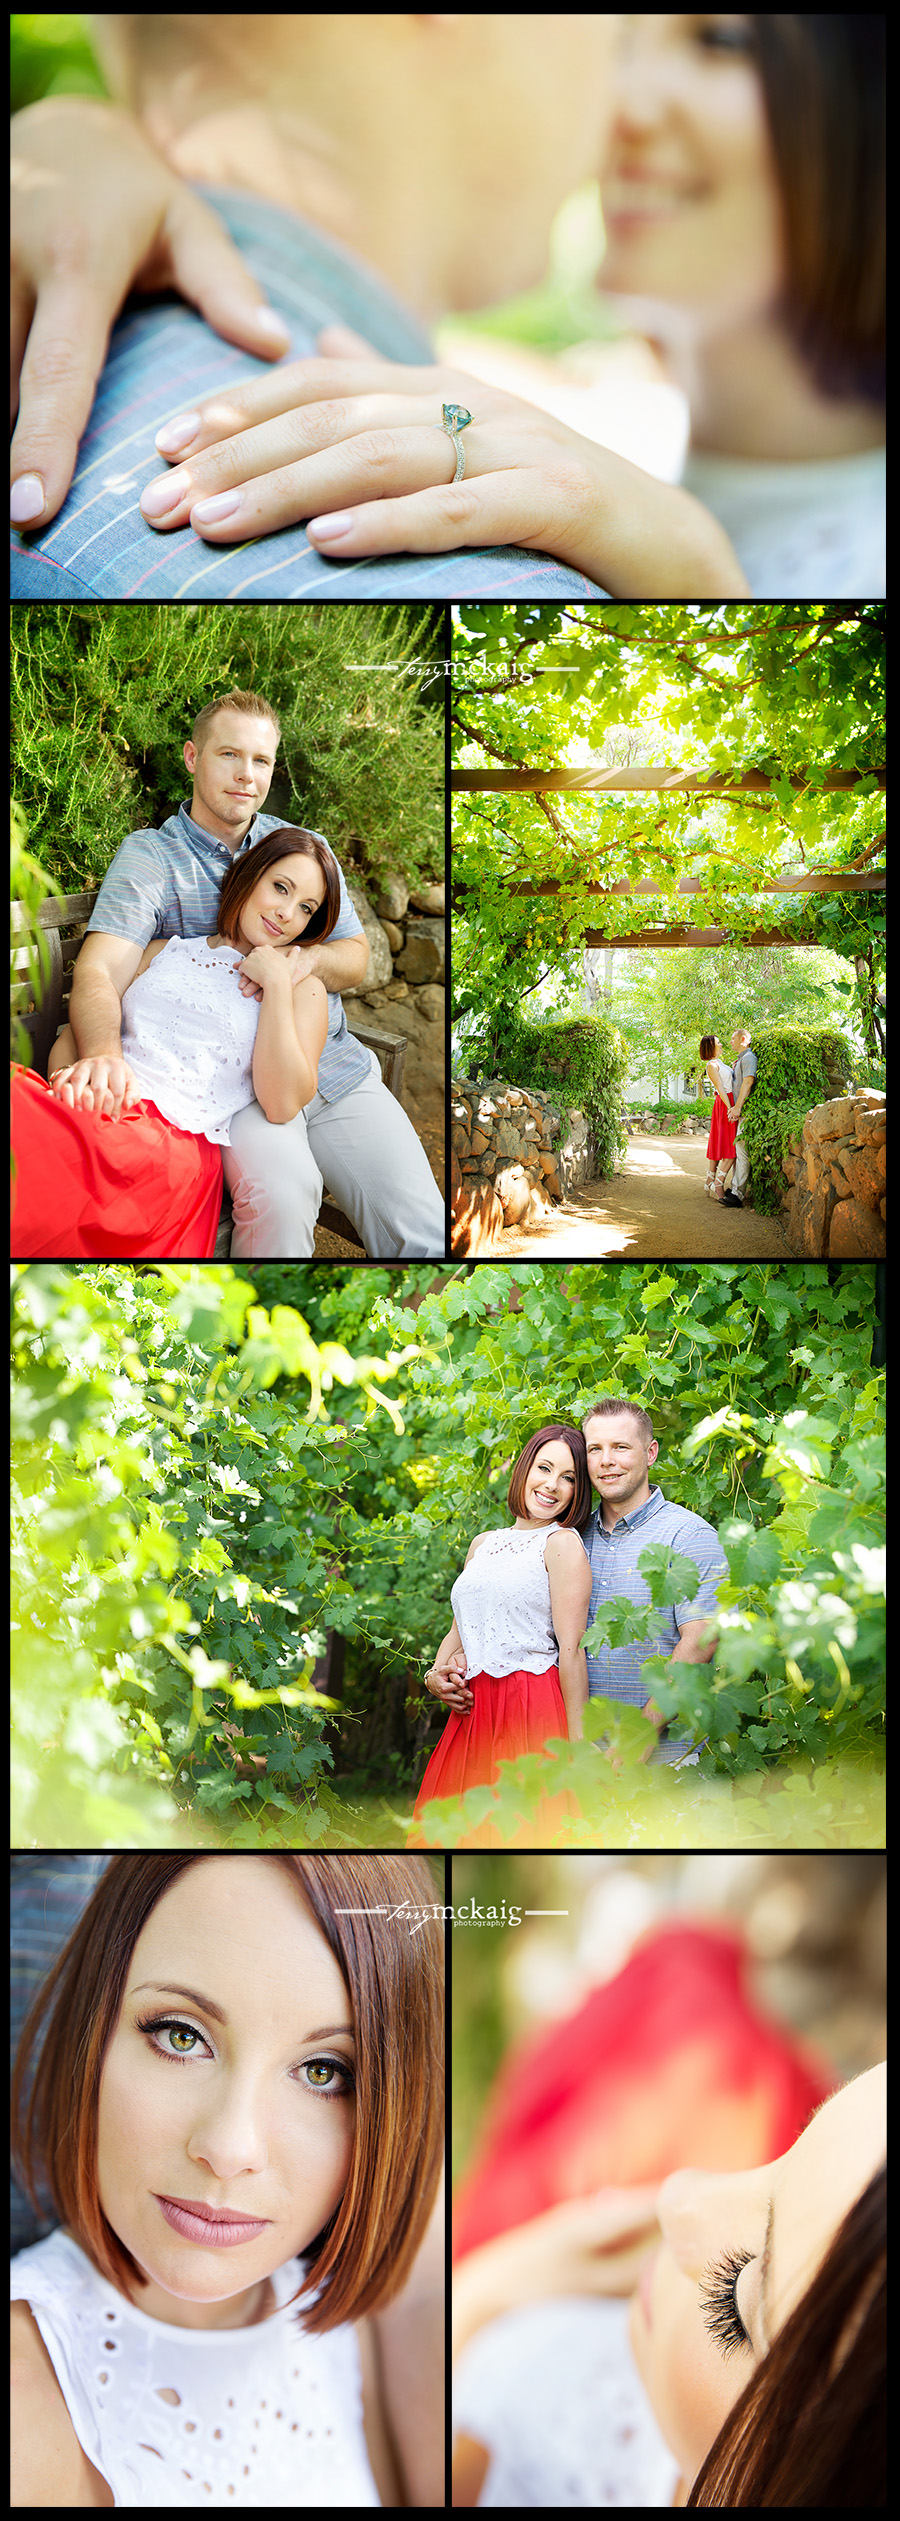 Sedona engagement session Terry McKaig Photography engagements